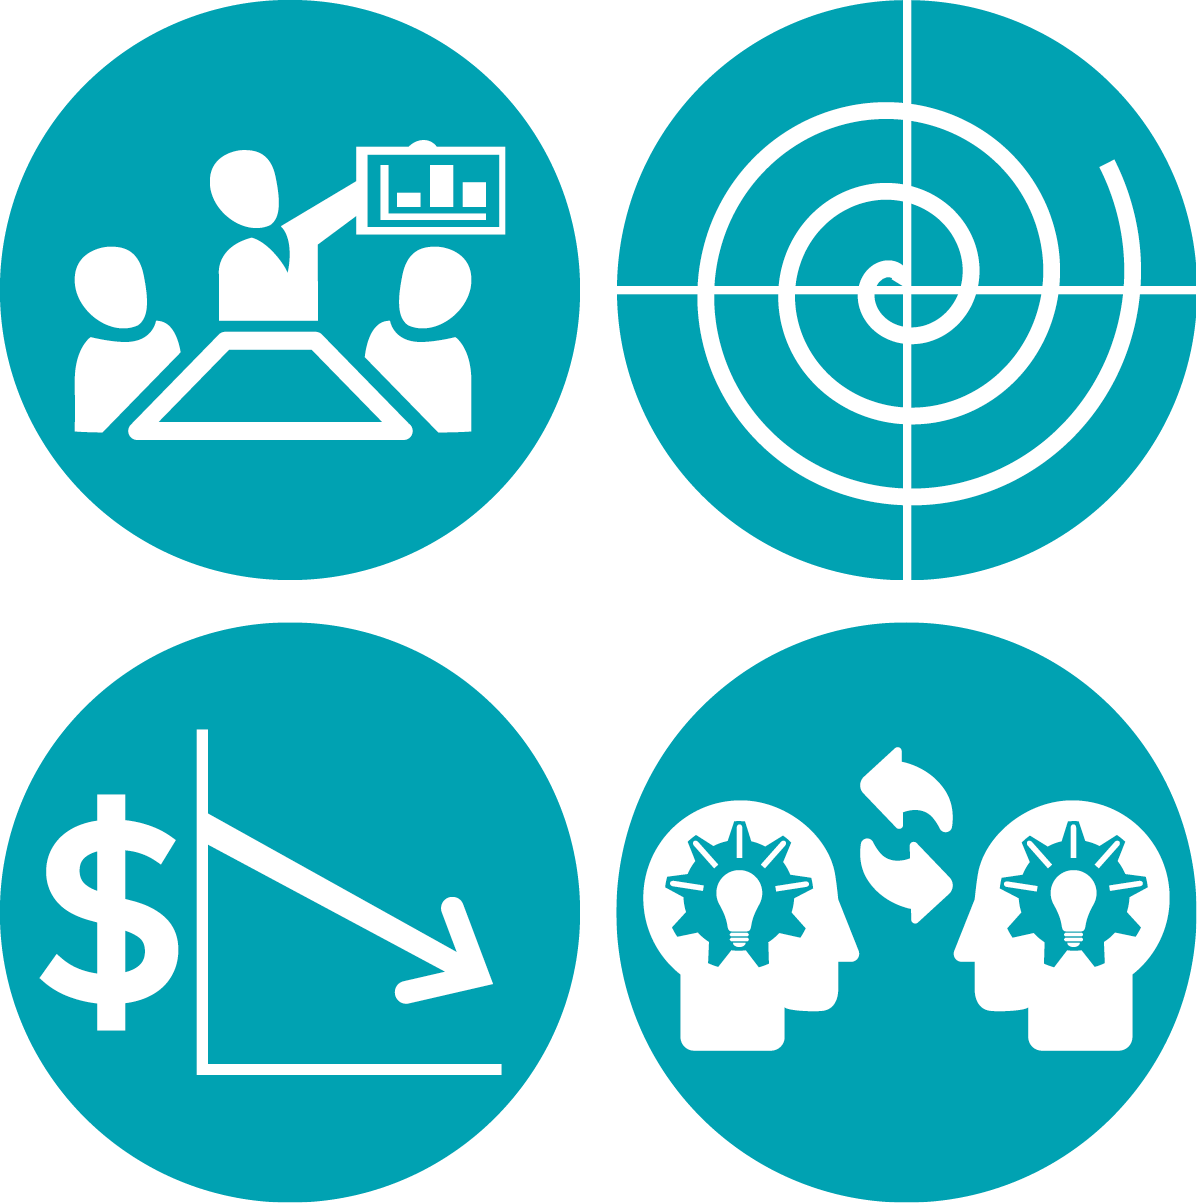 Icons representing Phase II services: user-centered, design thinking, cost controls and knowledge transfer